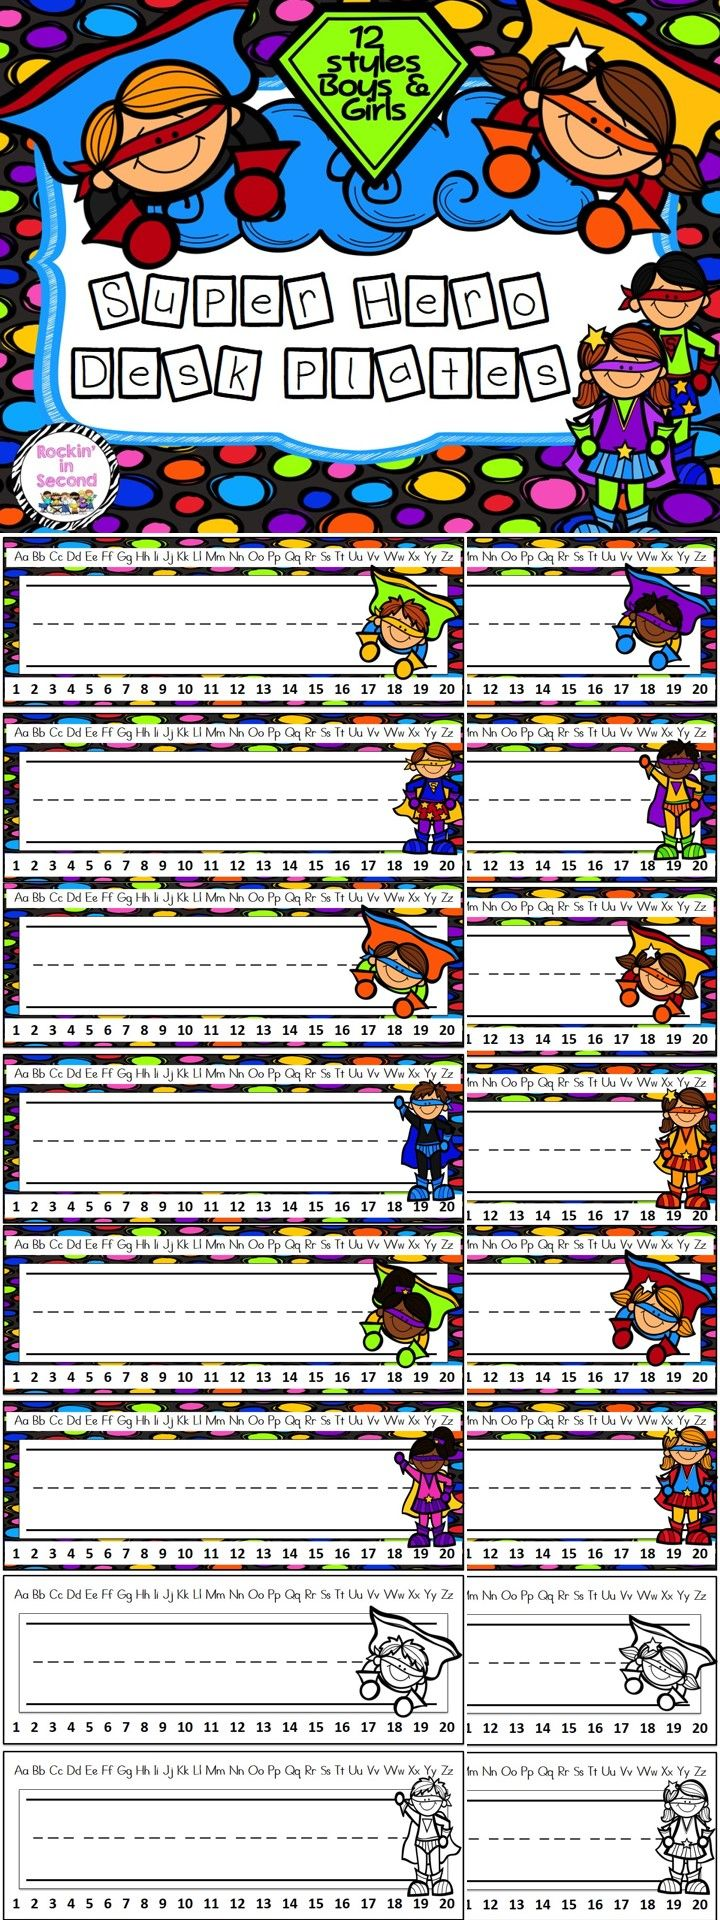 Complete your Super Hero classroom with these desk plates. Set includes: 16 different desk plates in 8 designs. Customized for girls and boys. 4 black & white included (2 girls & 2 boys) Students can decorate their own. Alphabet & Number Line included. Print on cardstock, laminate, and cut. Follow me on TPT for more exciting activities and FREEBIES!! All new products are 50% off for the first 24 hours. Like me on Facebook: www.facebook.com/rockininsecond